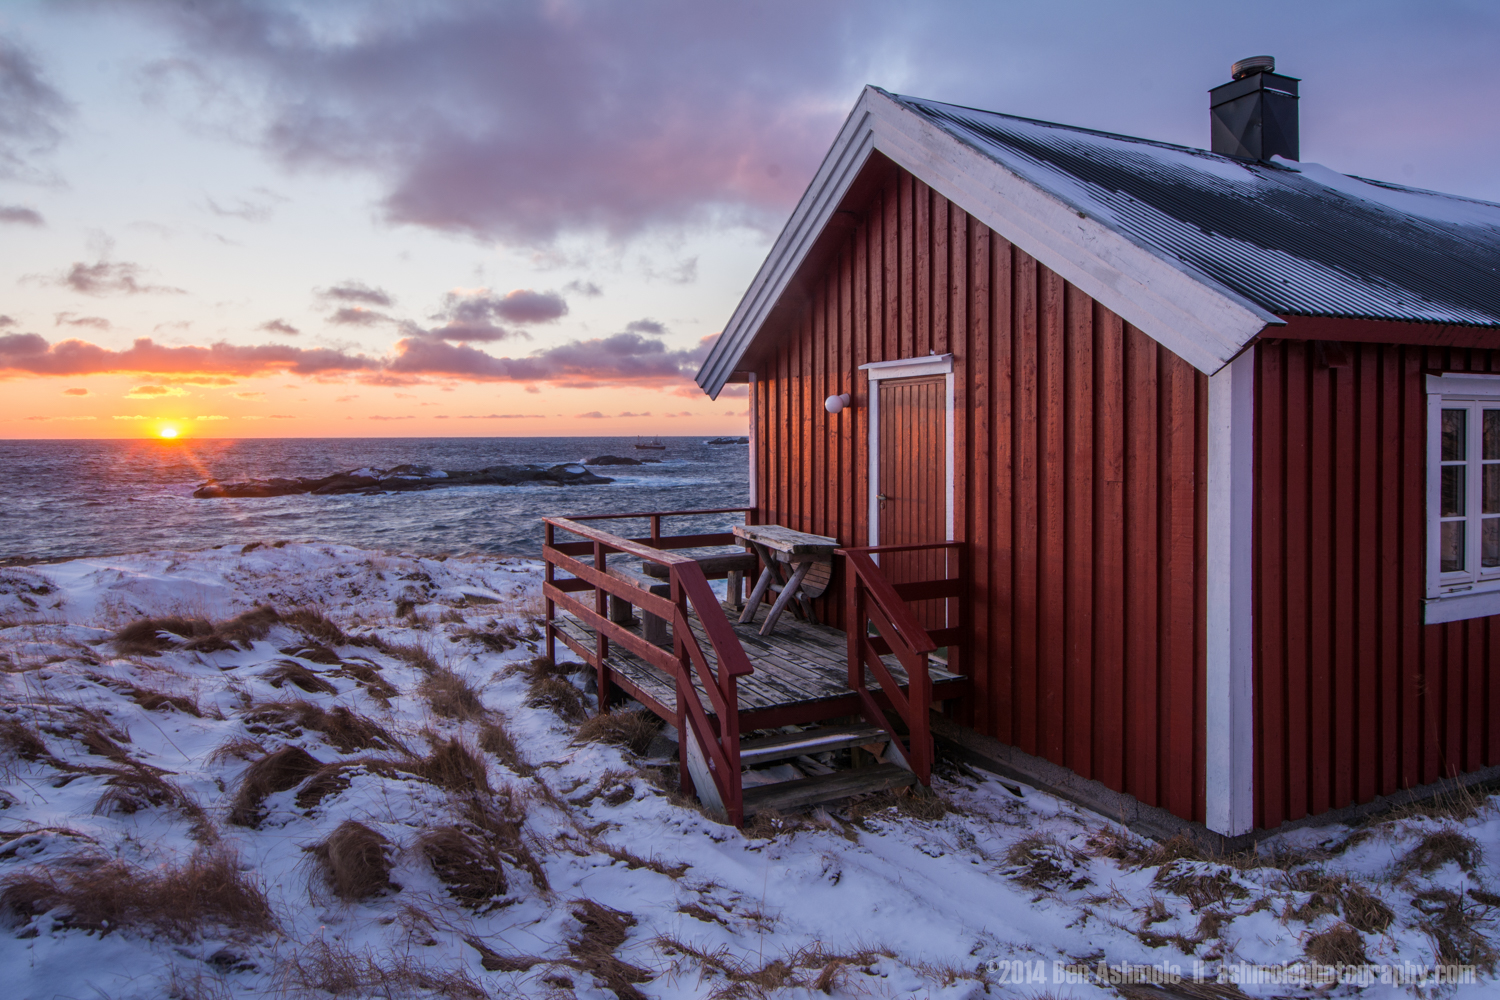 Cabin At Sunset, Reine, Lofoten Islands, Norway